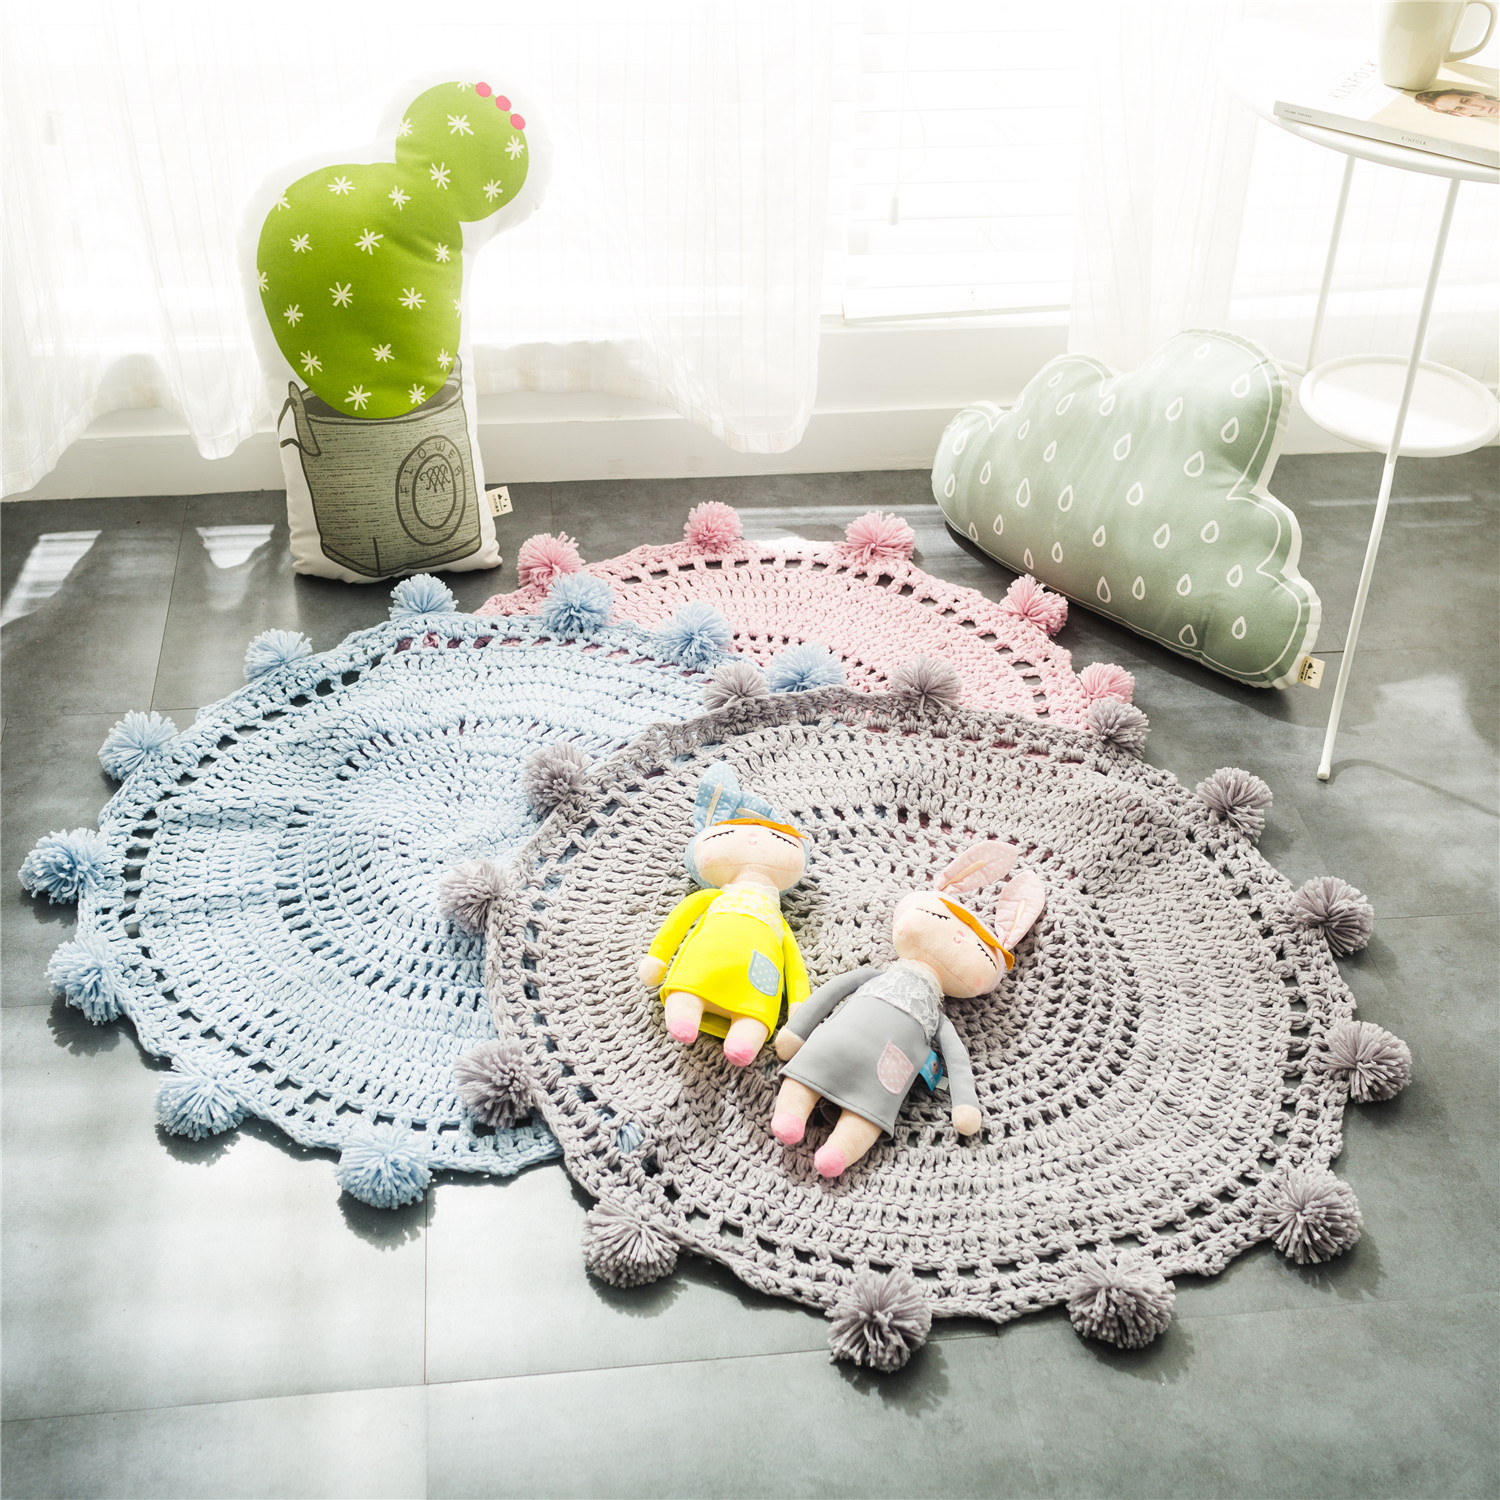 ФОТО Pure Handmade Baby Blanket Cotton Out Door Playing Hollow Blanket Swaddle Me Baby Bedding  Decorative Circular Blanket